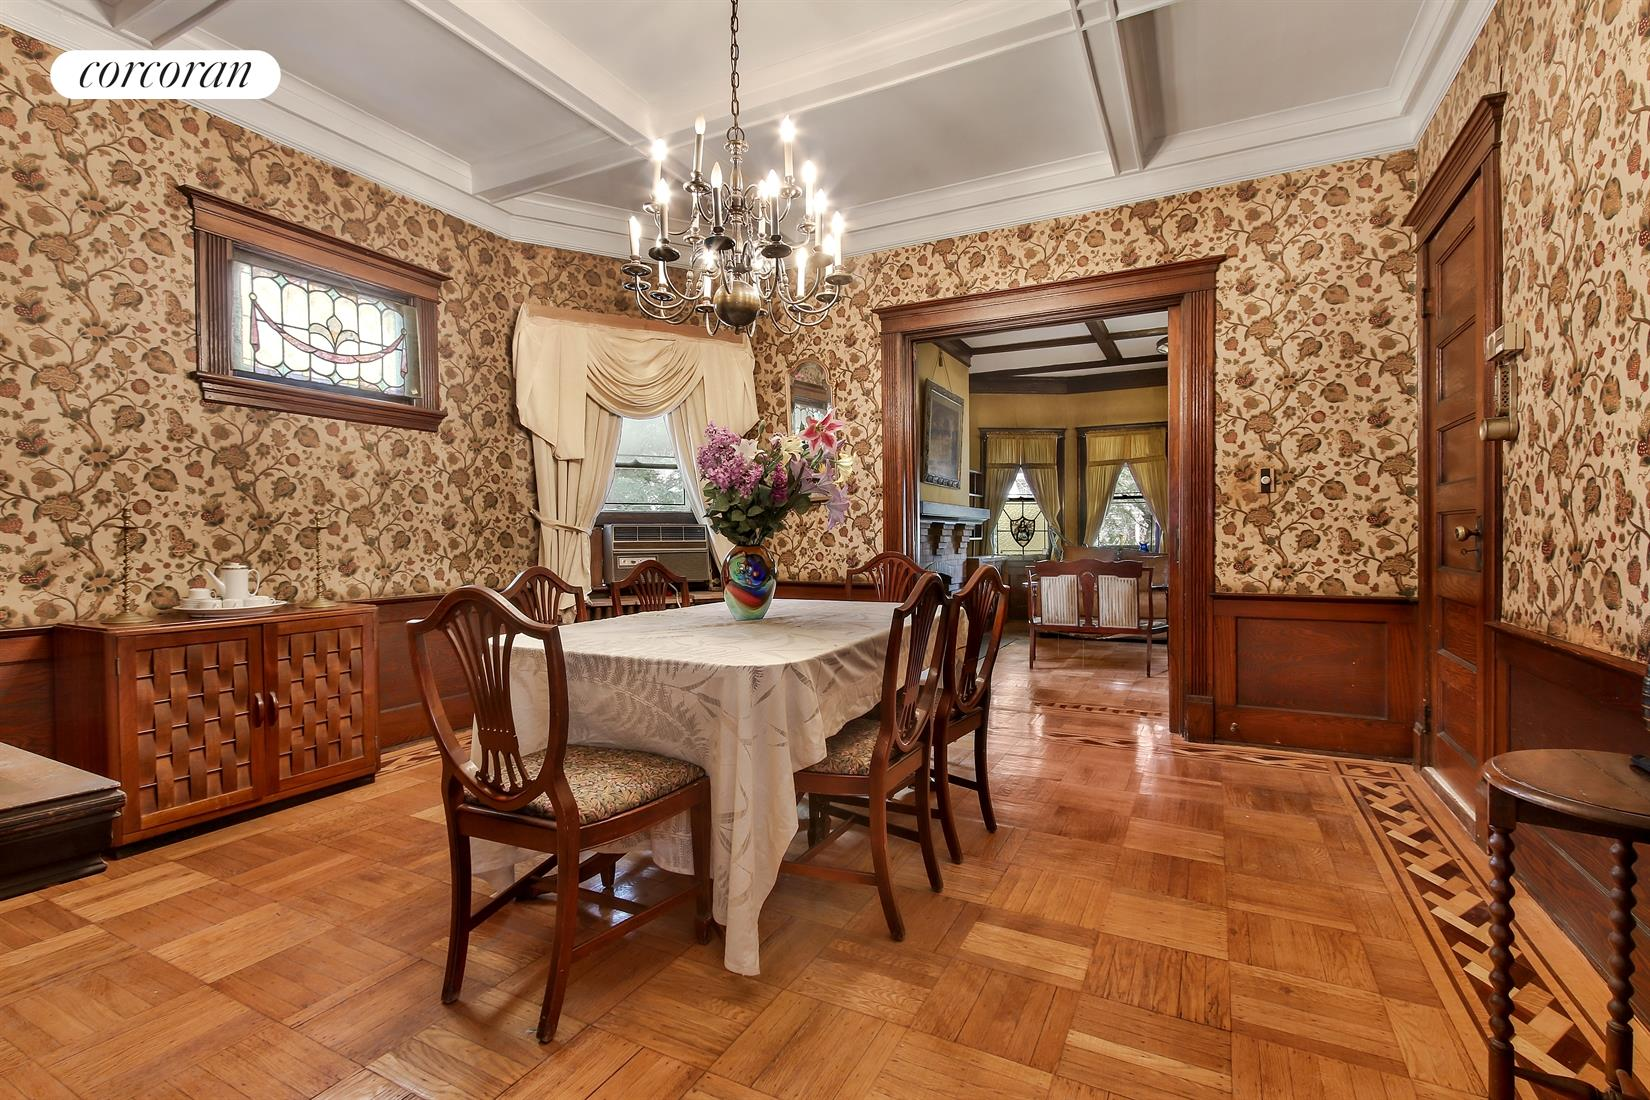 654 East 17th Street, A classic Victorian home with private office suite